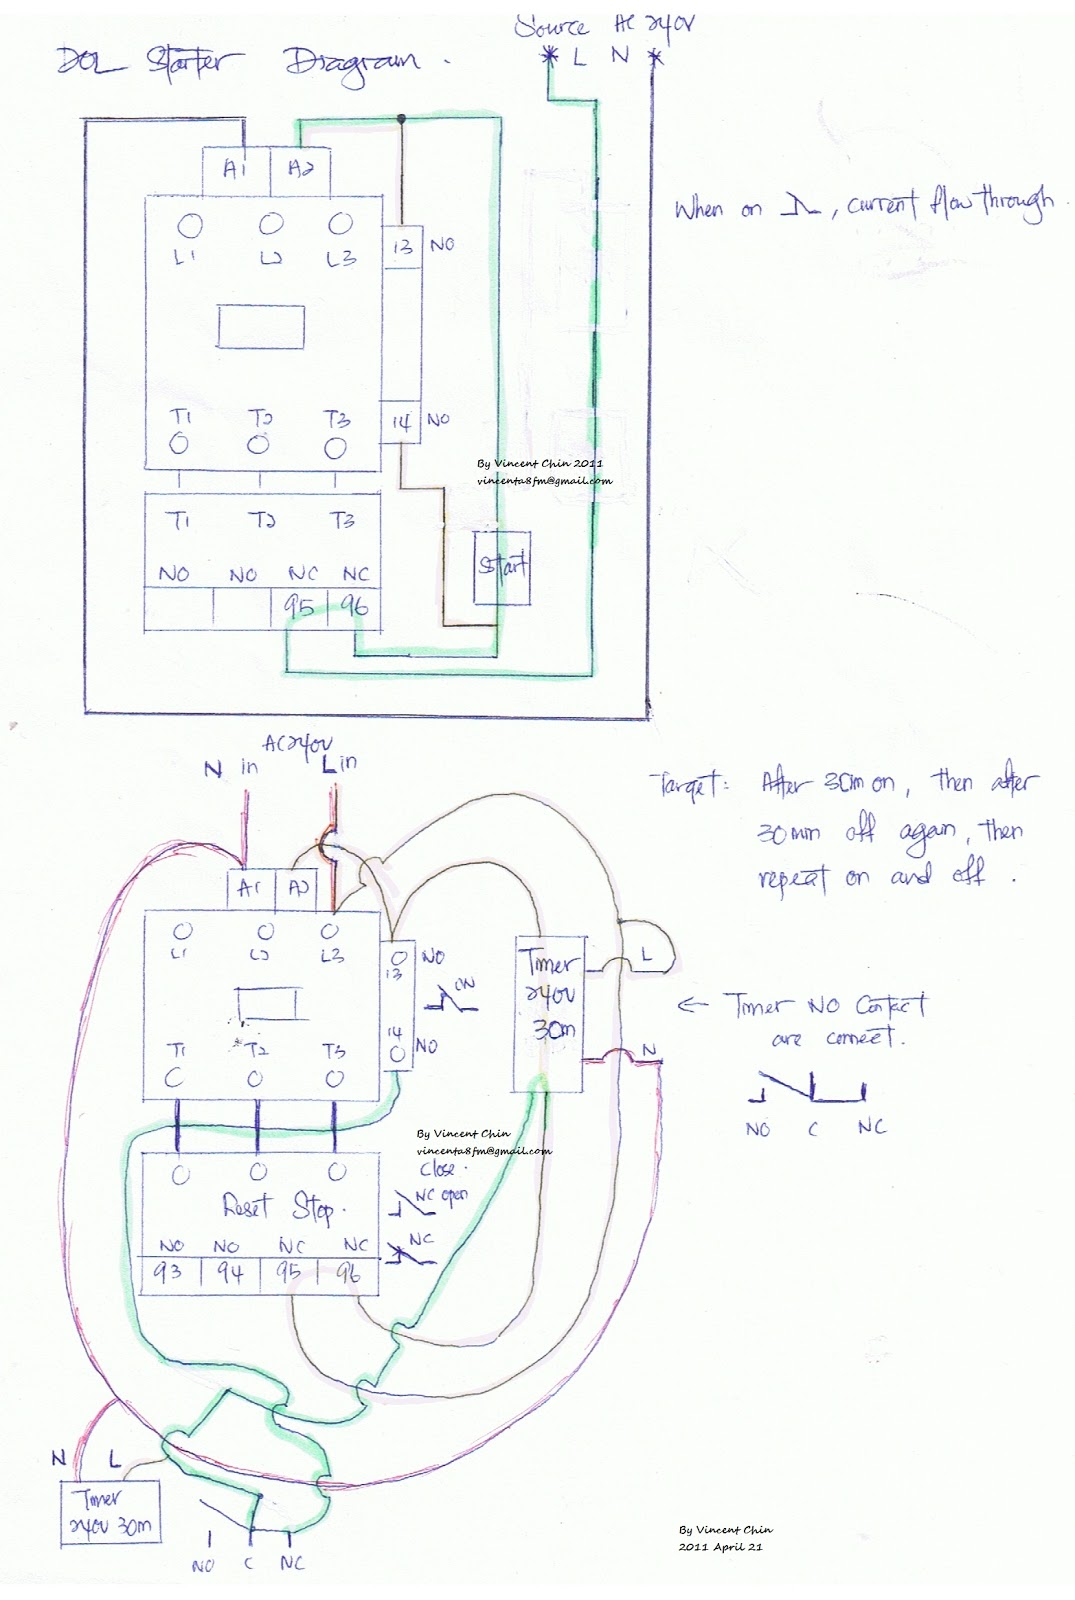 DOL+Starter vinca's blog dol starter wiring diagram omron my2n relay wiring diagram at soozxer.org